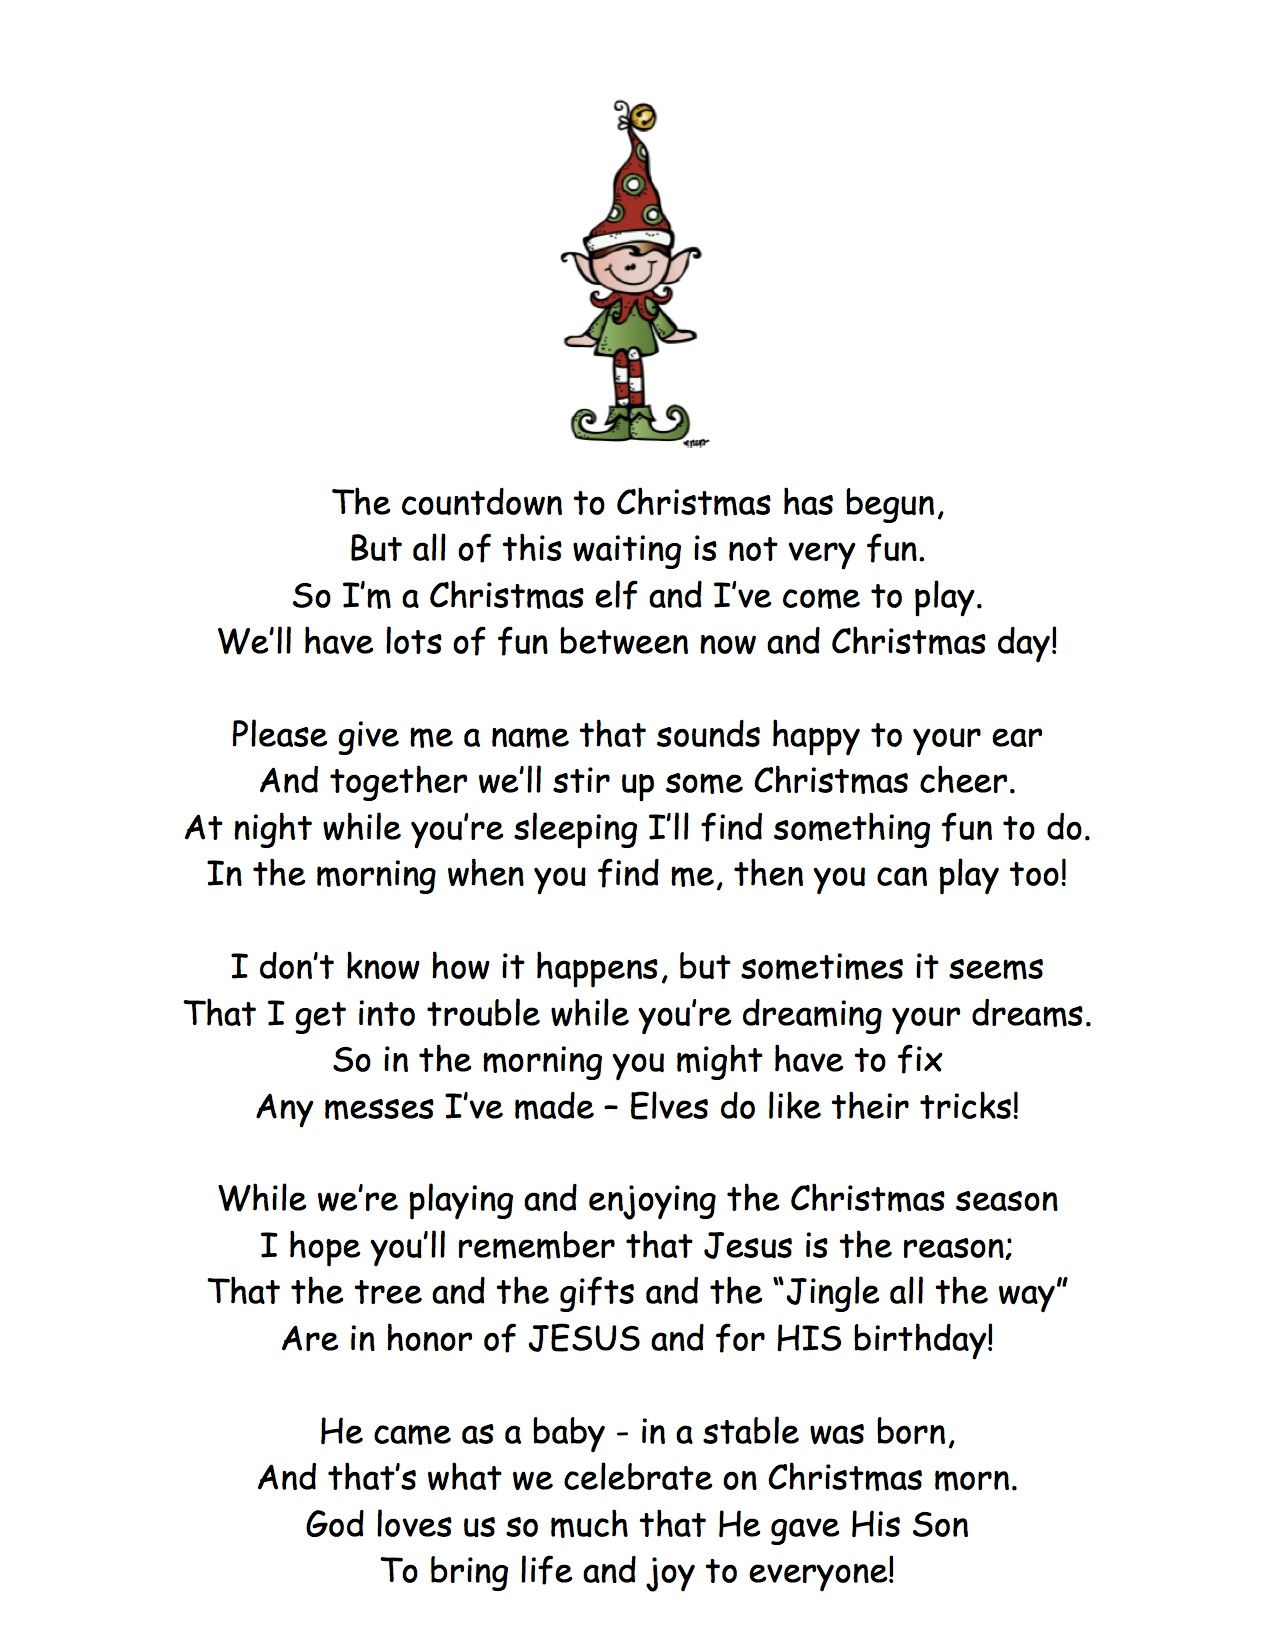 elf on the shelf introduction focuses more on the christmas story rather than santa it was written by my mom